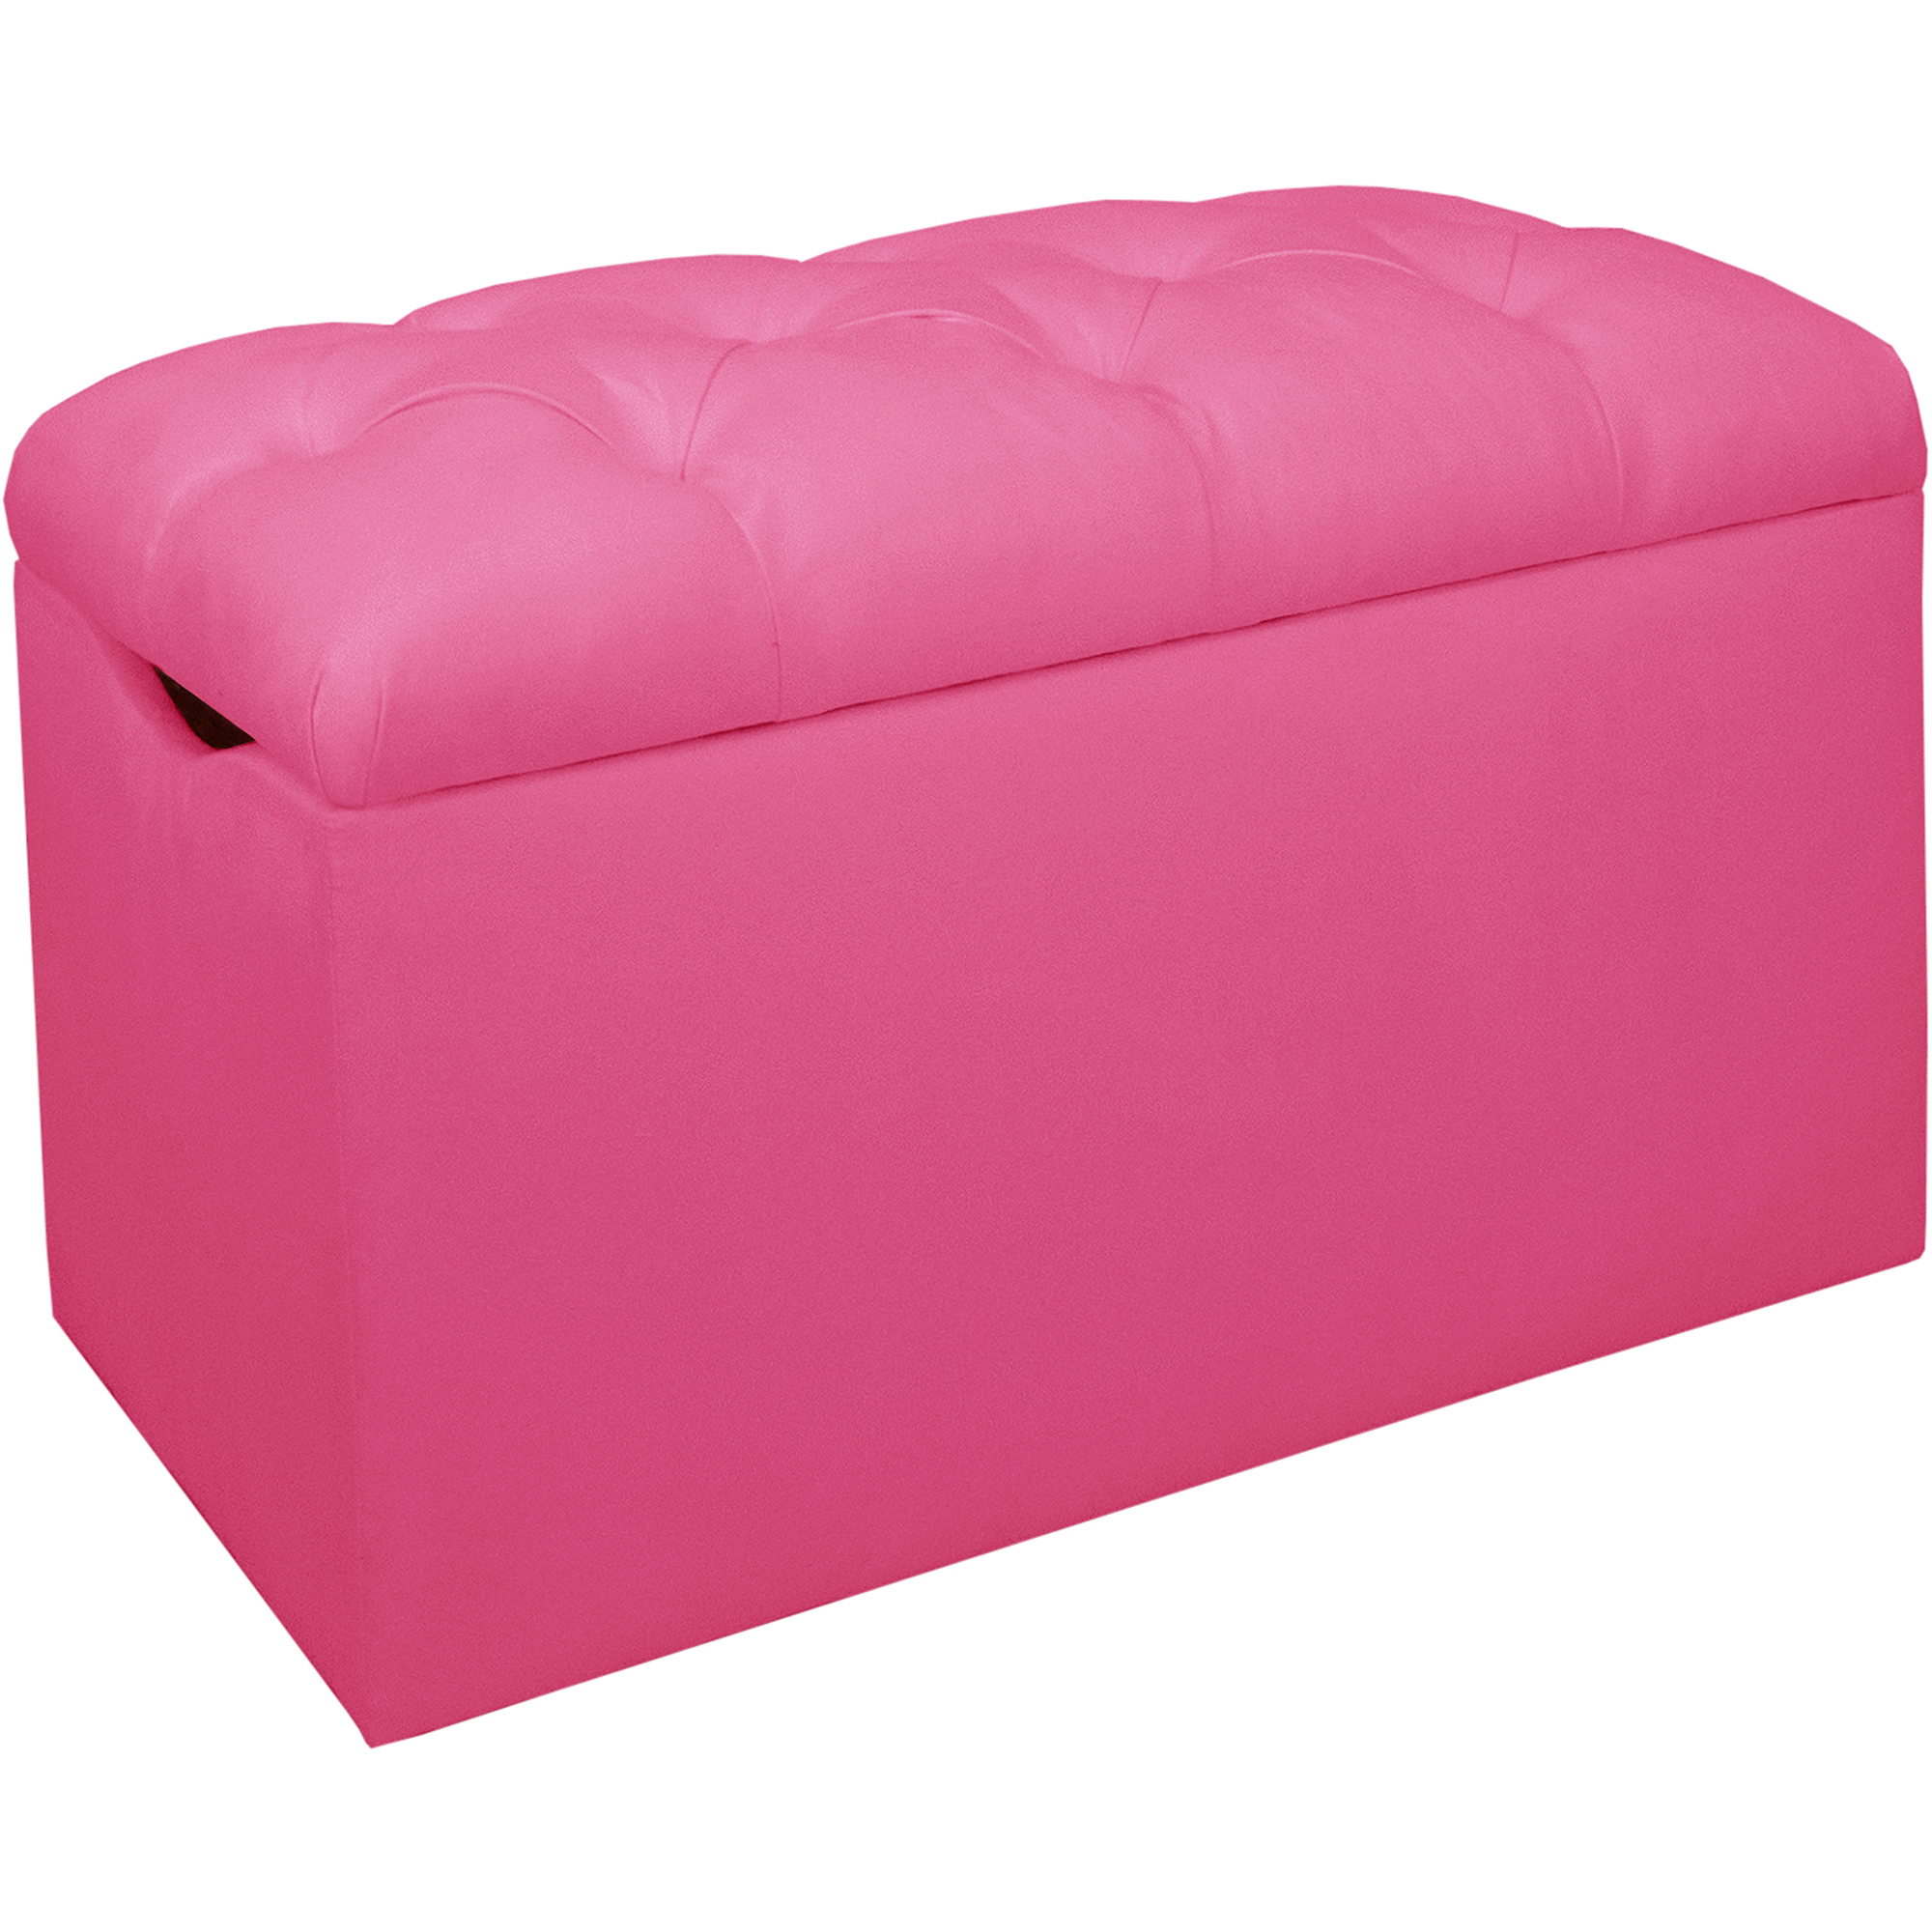 Kinfine USA Large Tufted Storage Bench Walmart.com. Full resolution  image, nominally Width 2000 Height 2000 pixels, image with #290604.